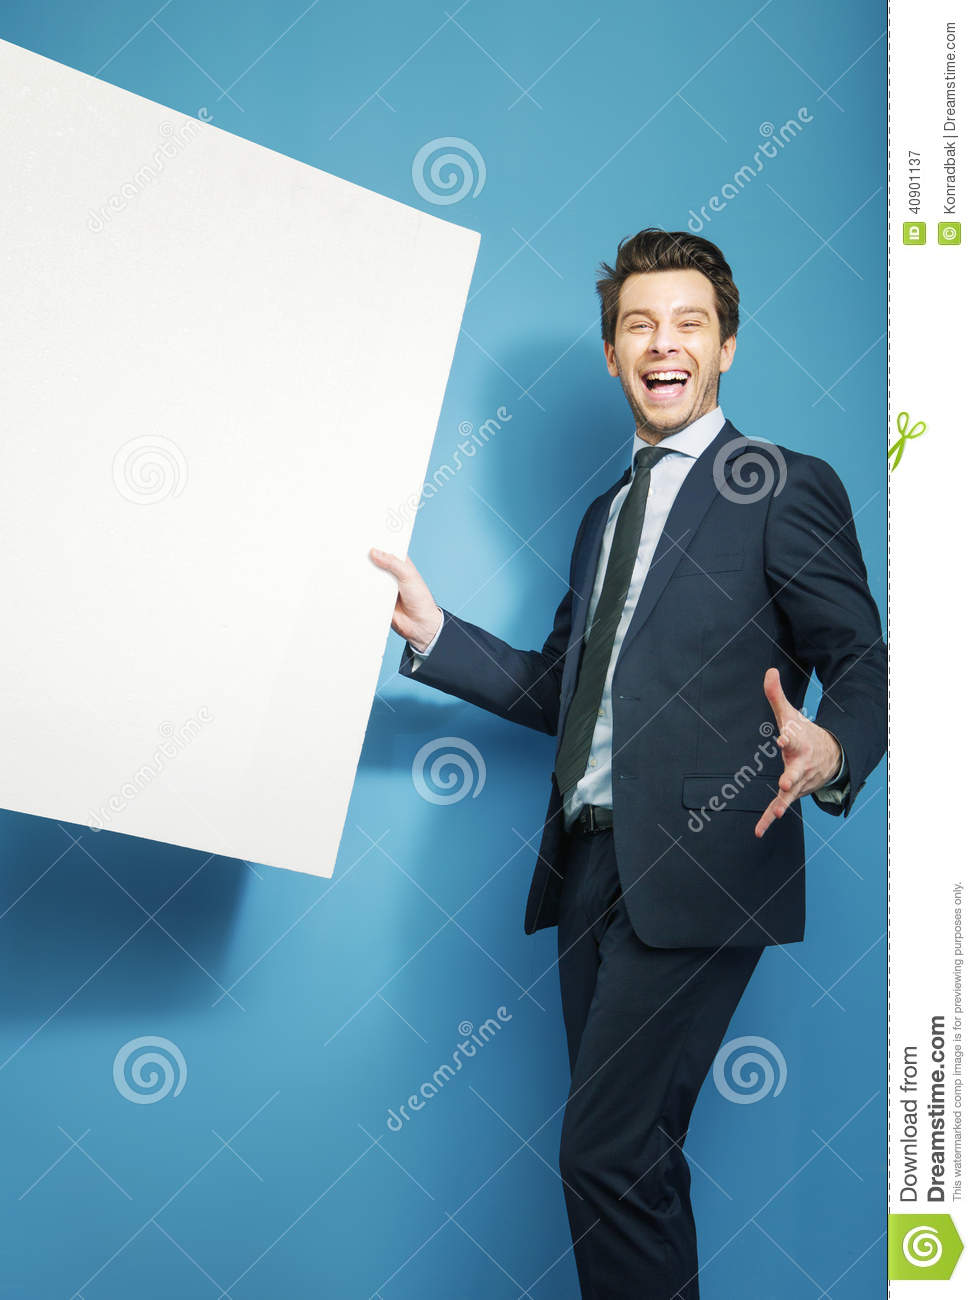 Funny handsome guy holding the board